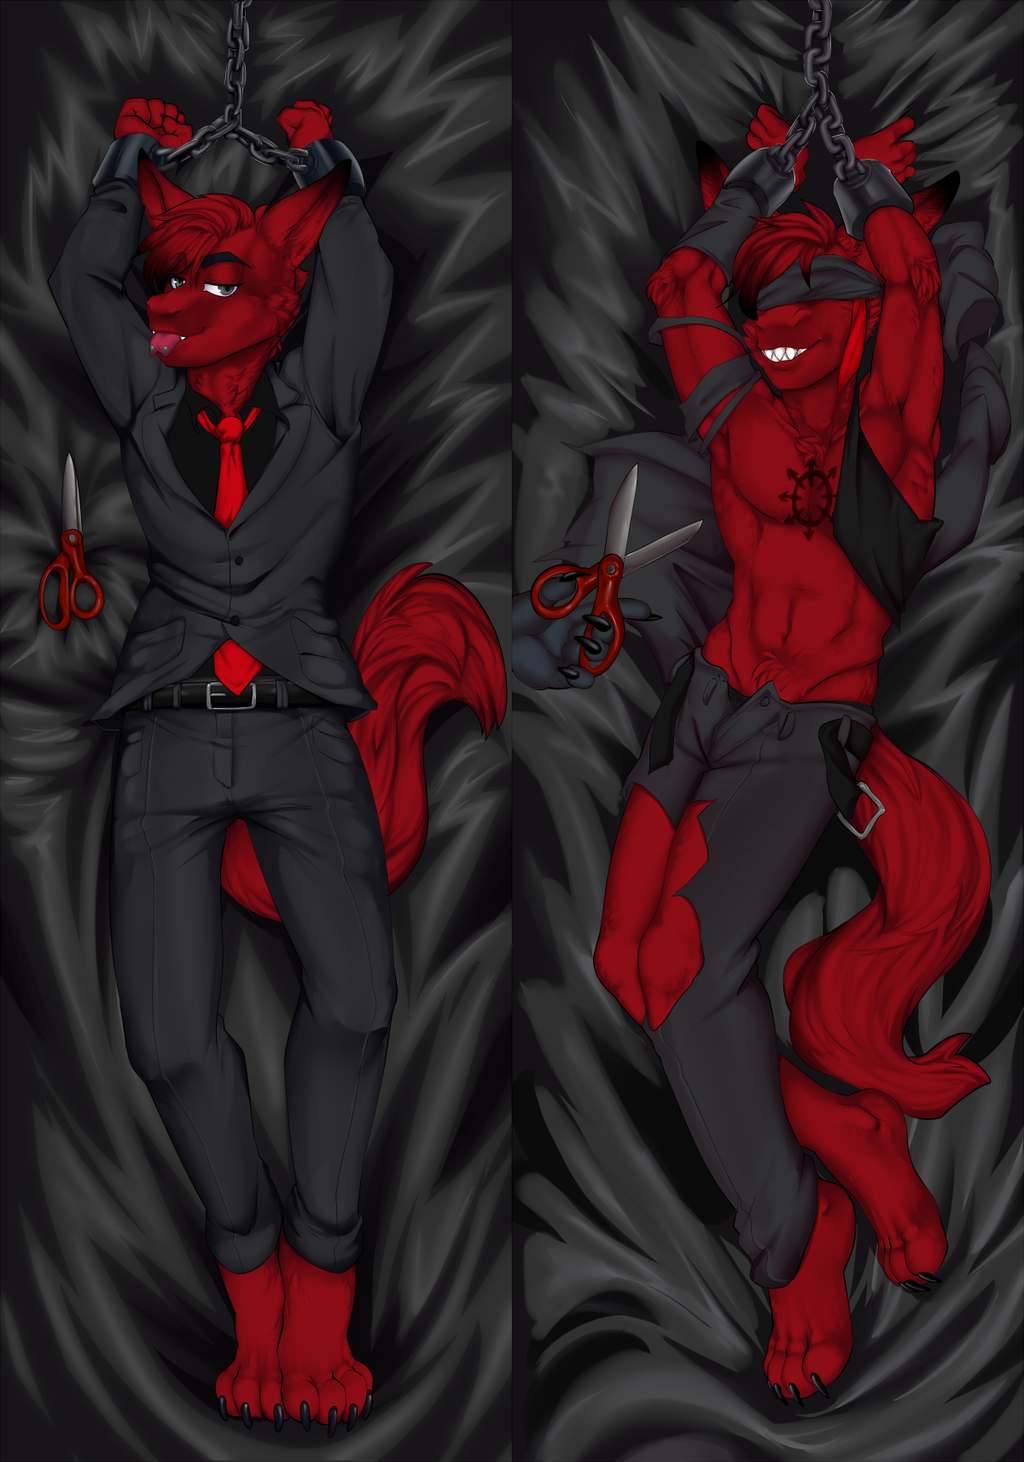 Most recent image: Vy Daki